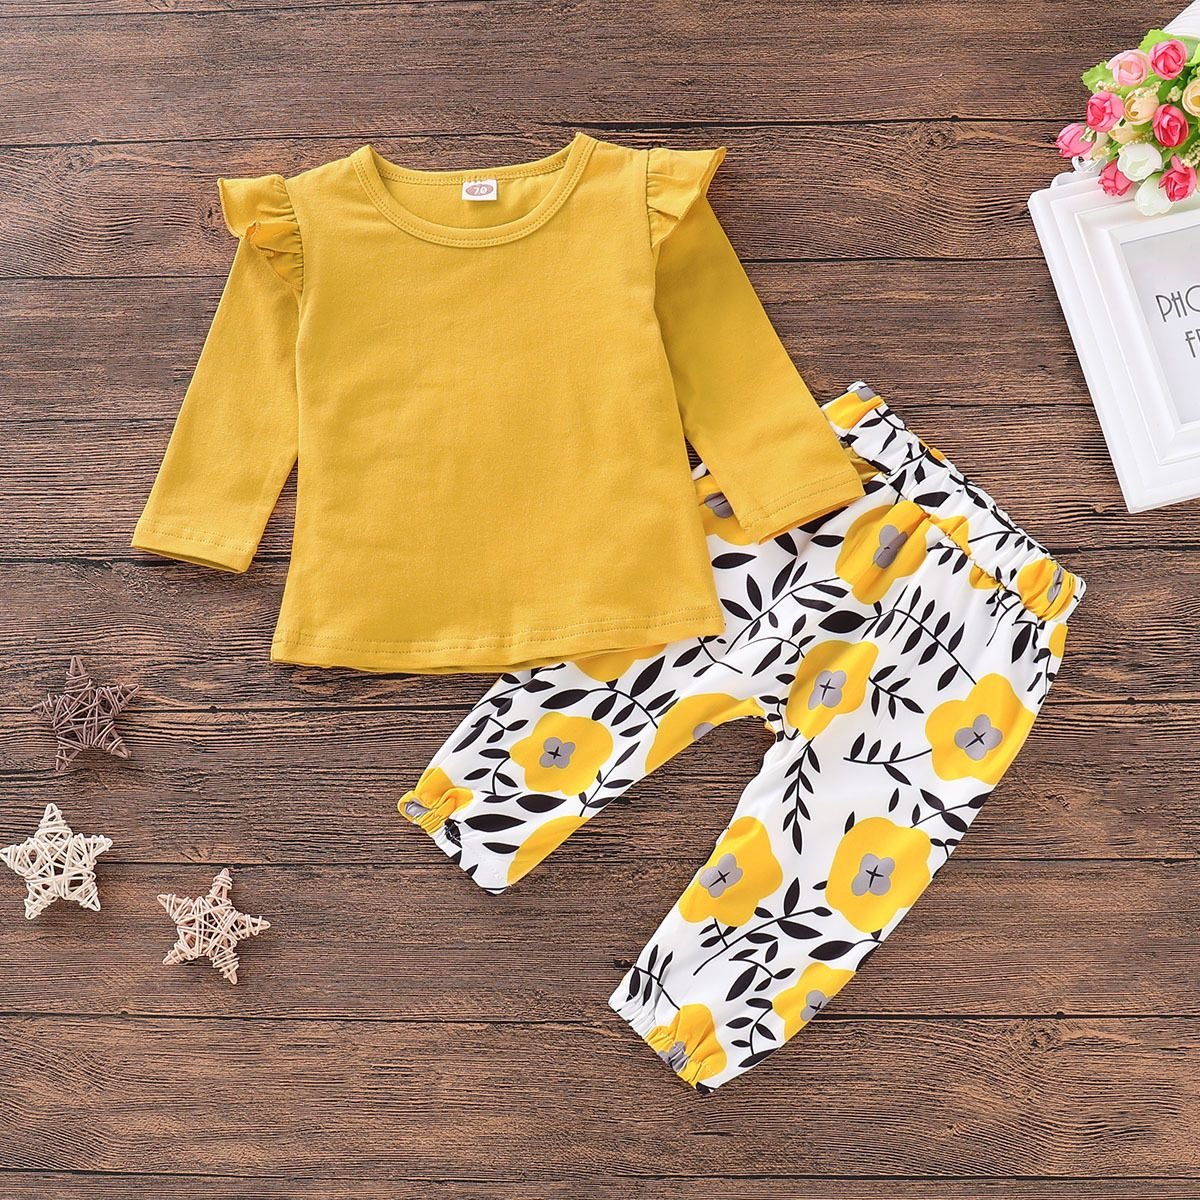 Infant Baby Girls Yellow Ruffled Long Sleeve Shirt Blouse Outfits Clothes for Autumn